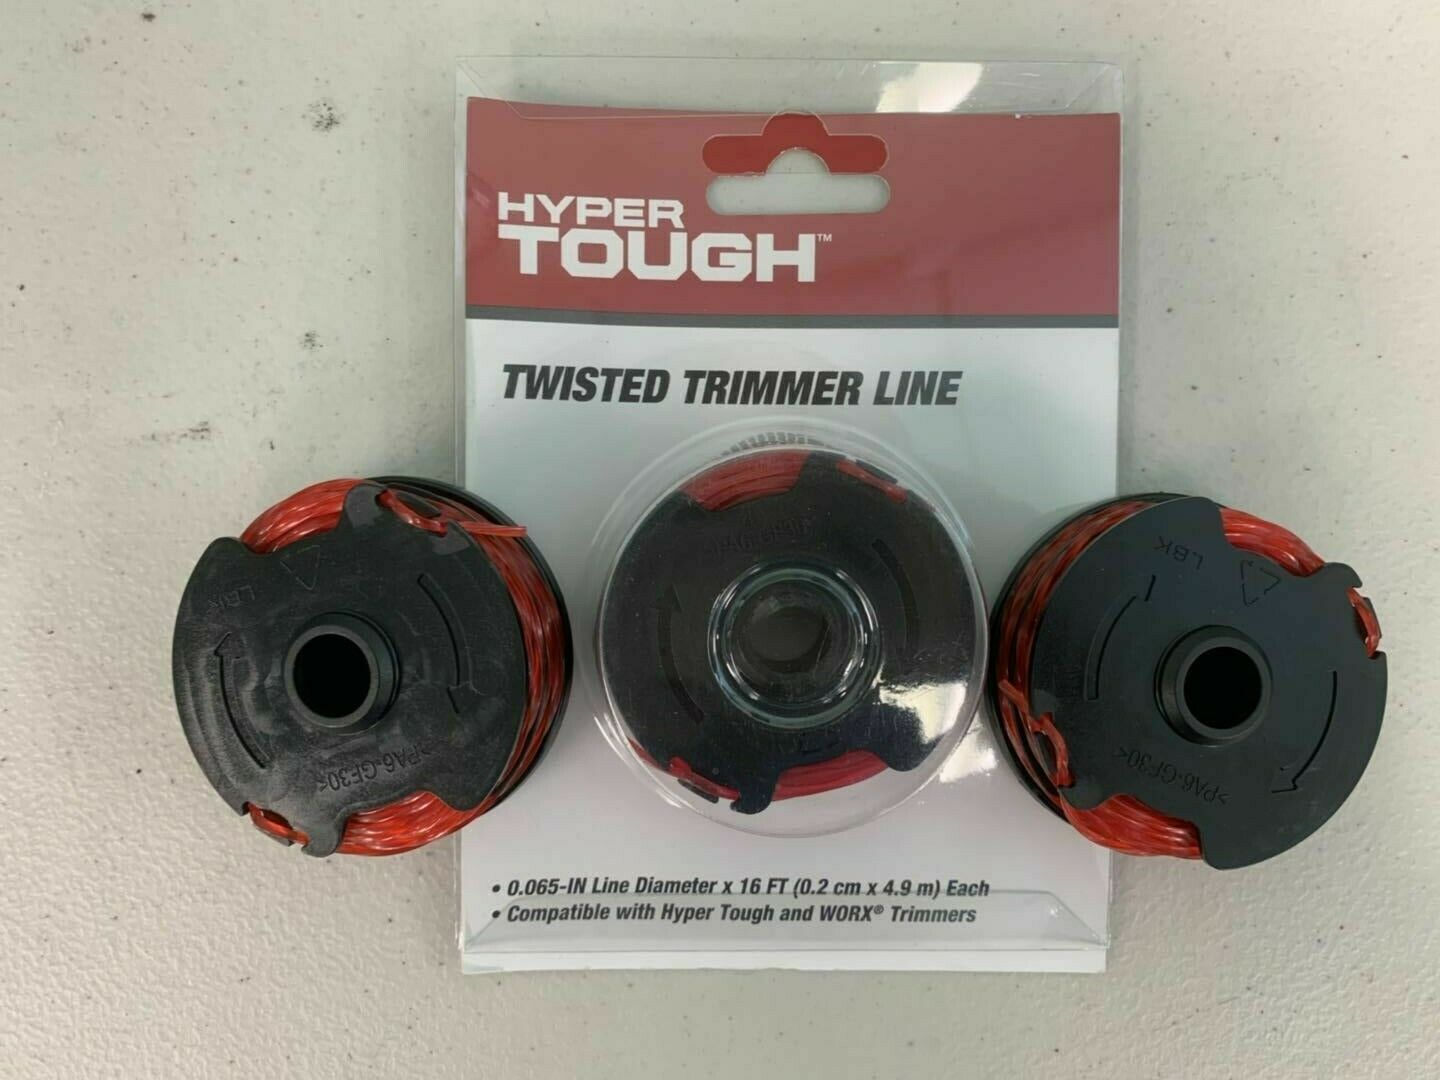 Hyper Tough Twisted Trimmer Line Replacement Spool HT18-401-004-01